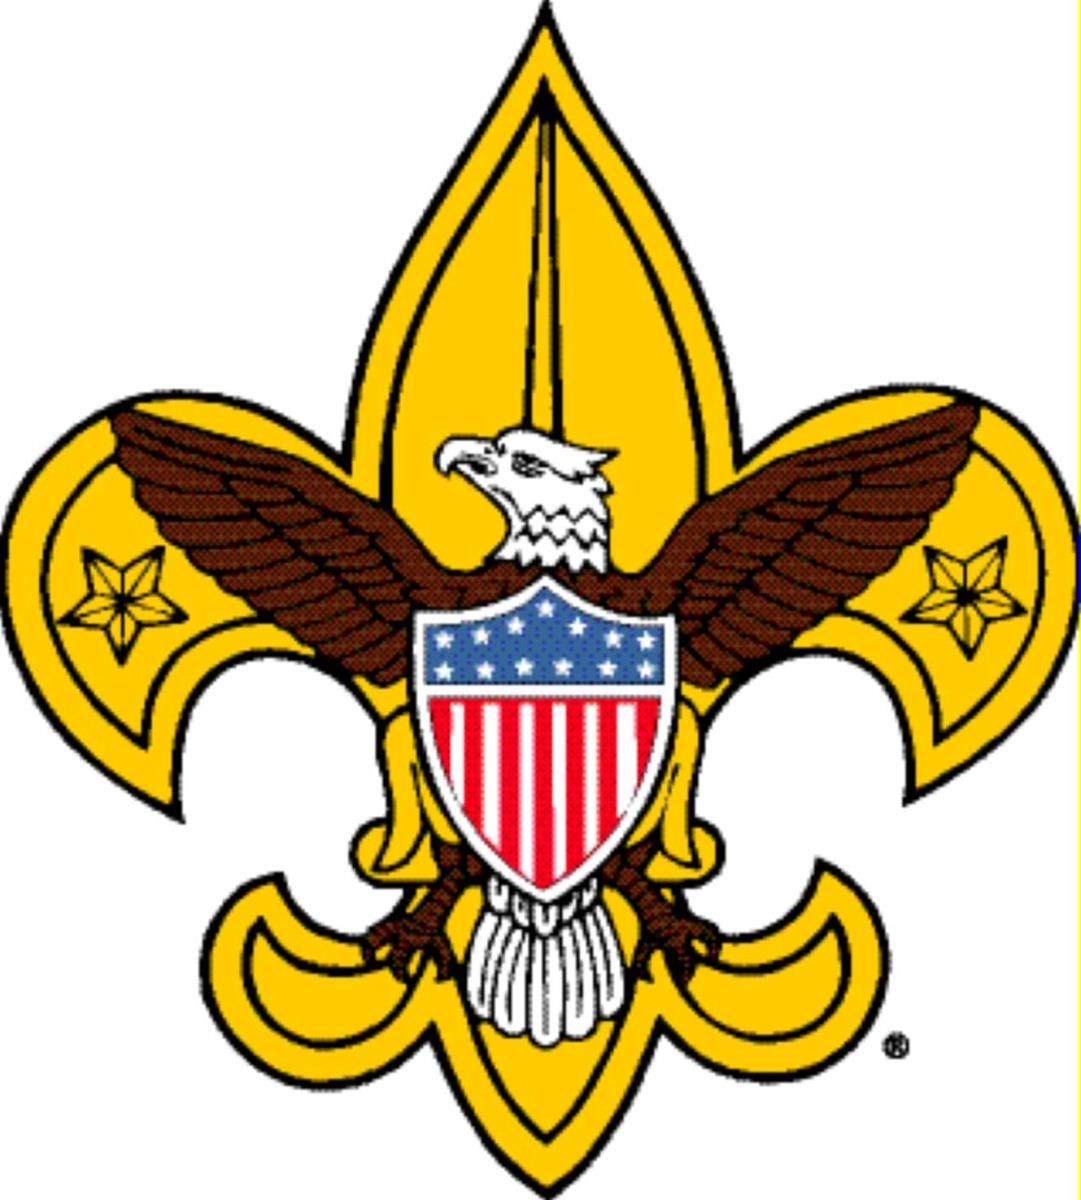 hight resolution of boy scout fleur de lis clip art clipart best clipart best